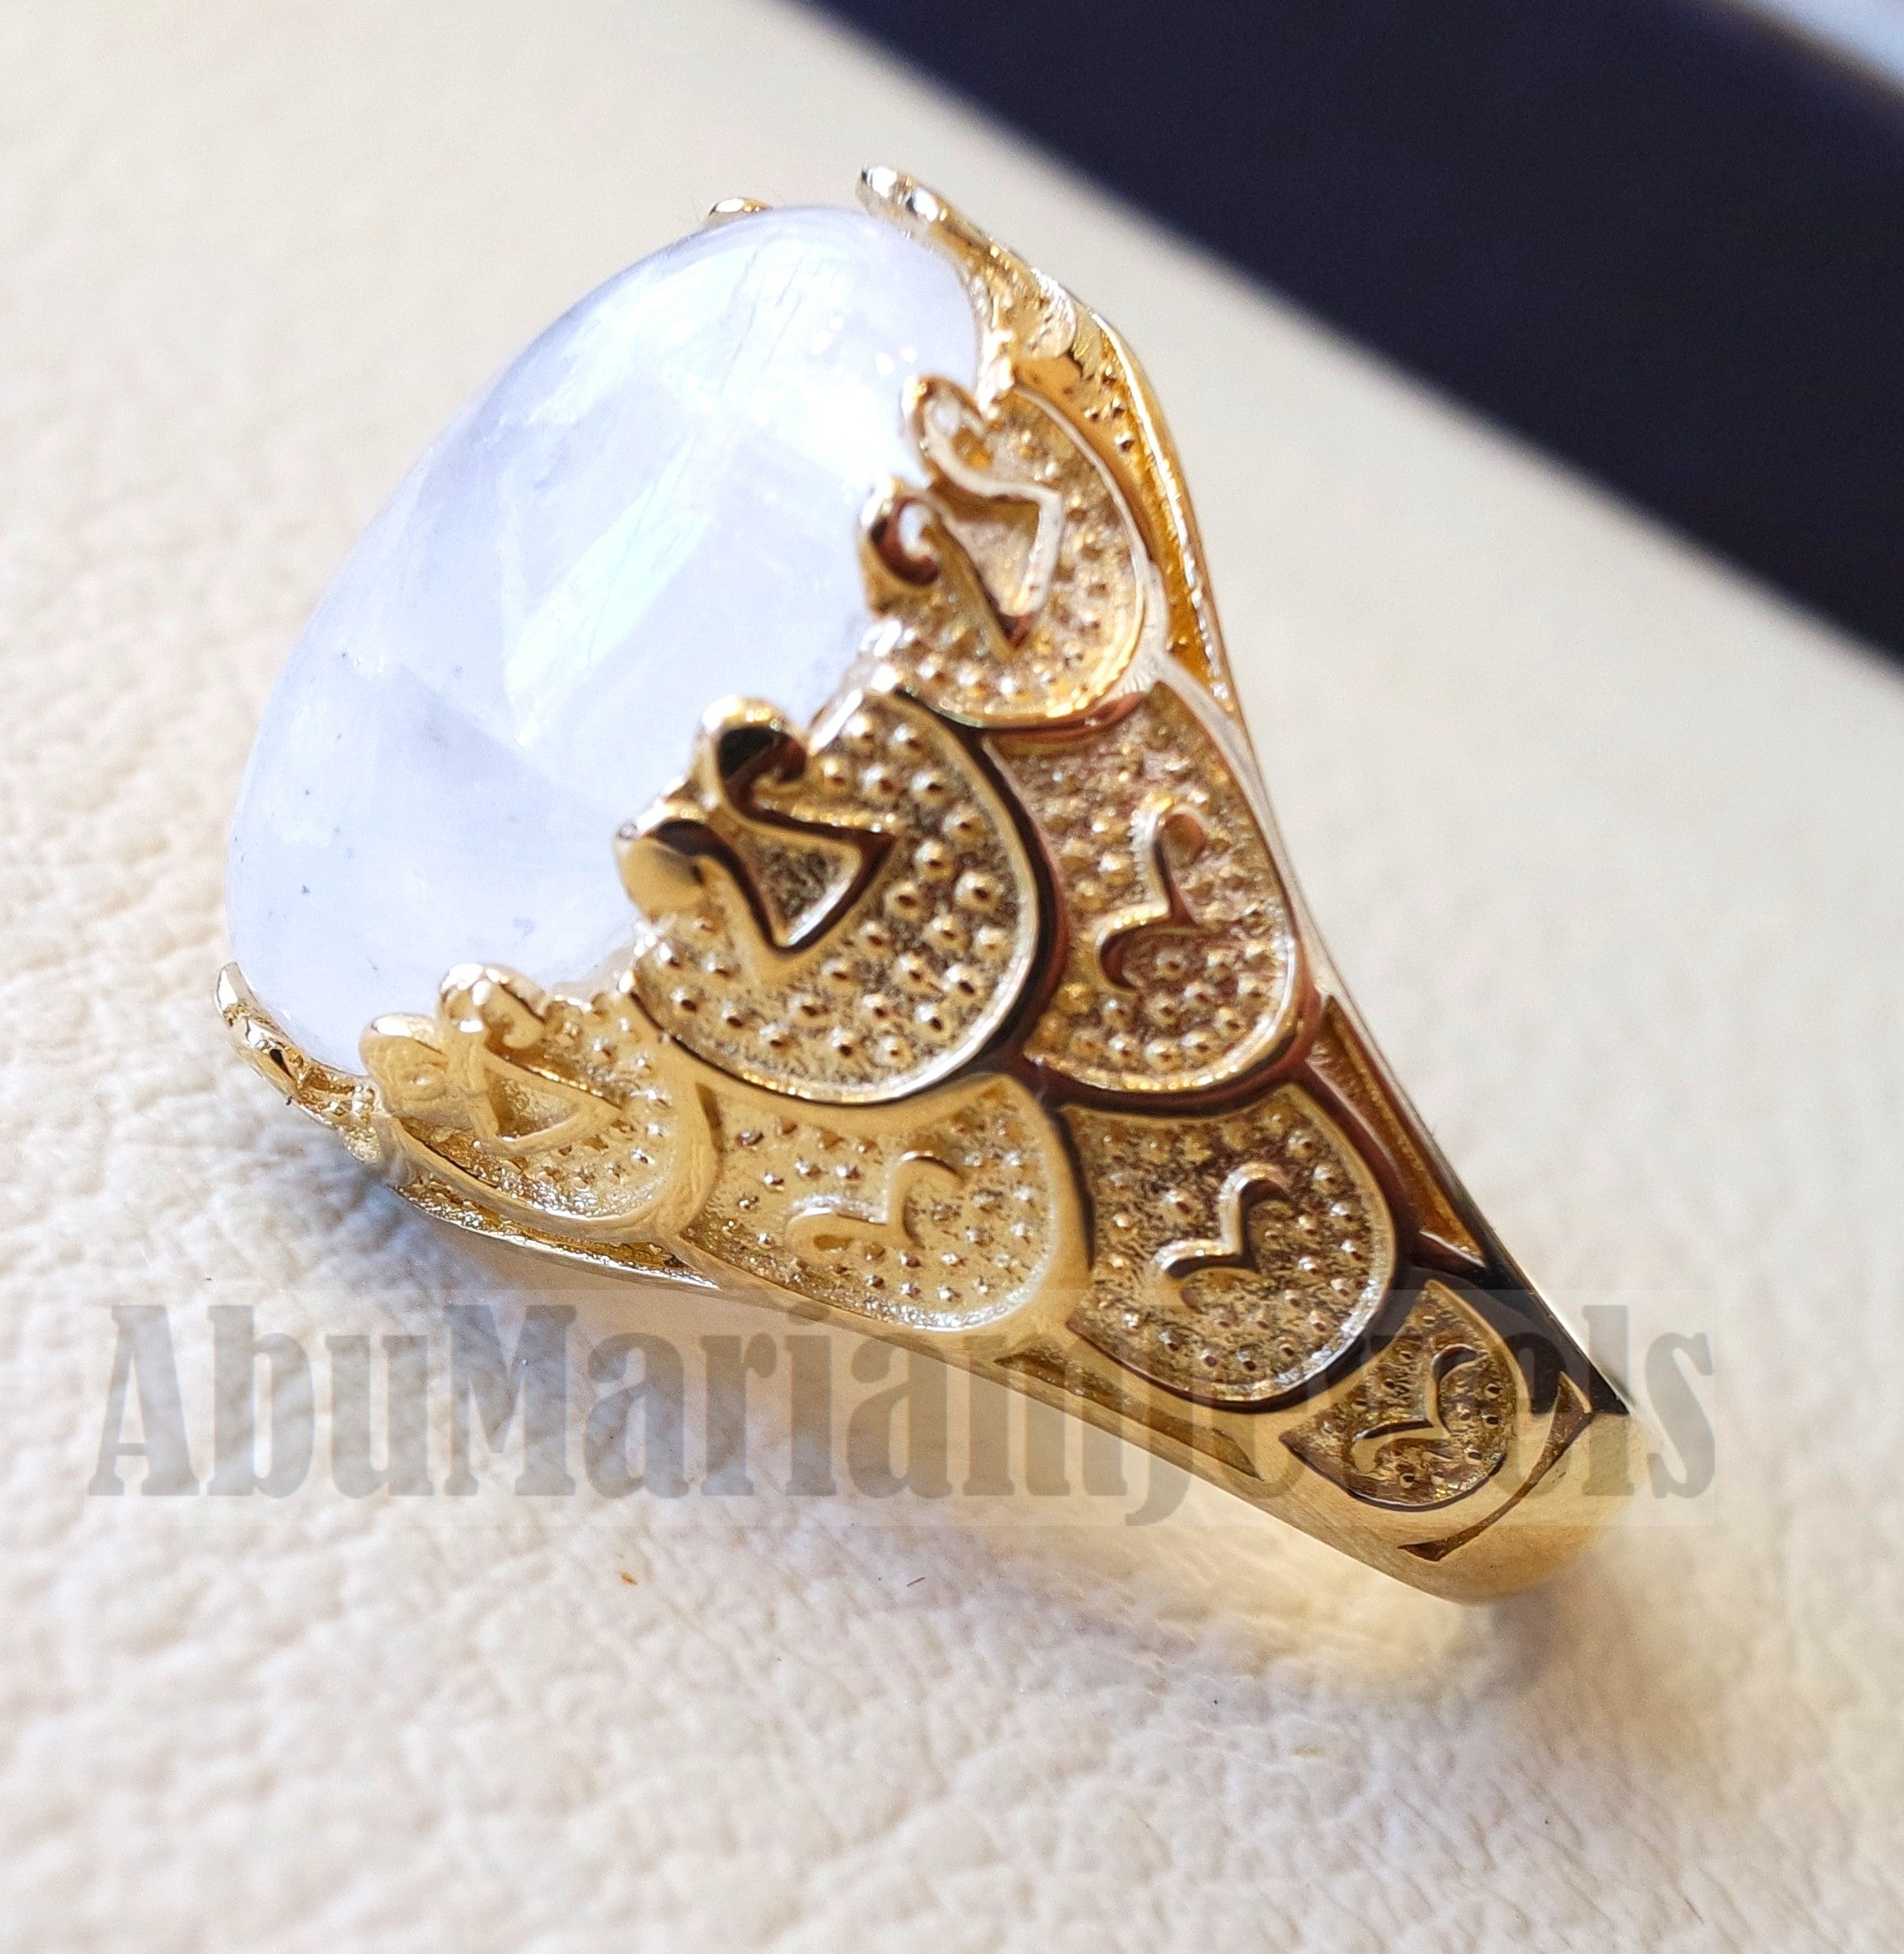 18k gold men ring moonstone energy stone high quality flashy white natural stone all sizes Ottoman signet style fine jewelry fast shipping